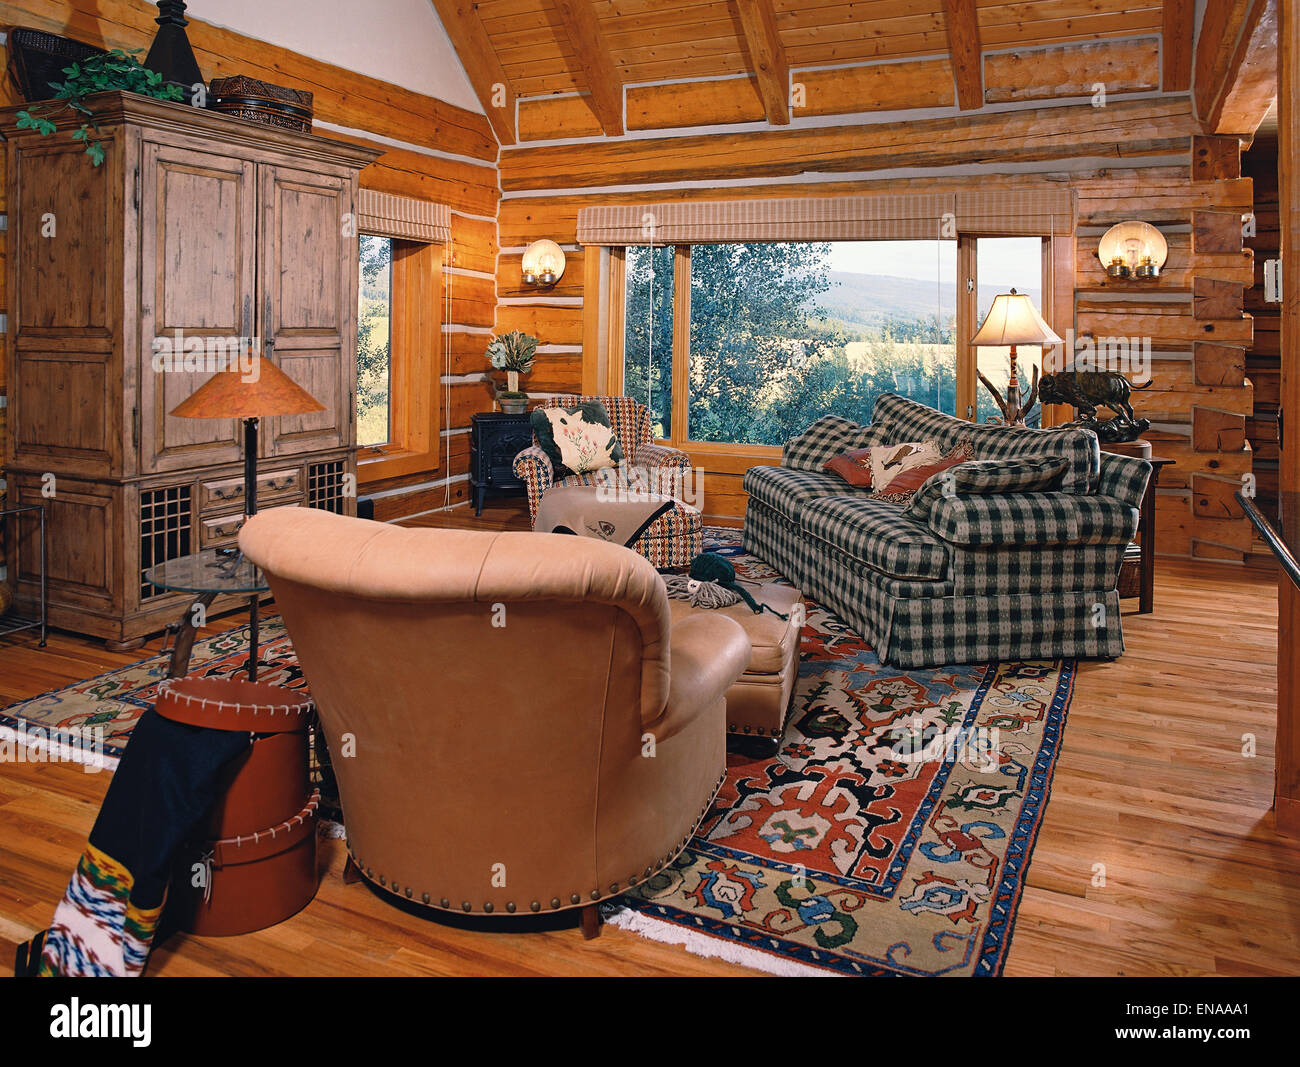 The sitting room in a modern Log cabin in the Mountains. - Stock Image